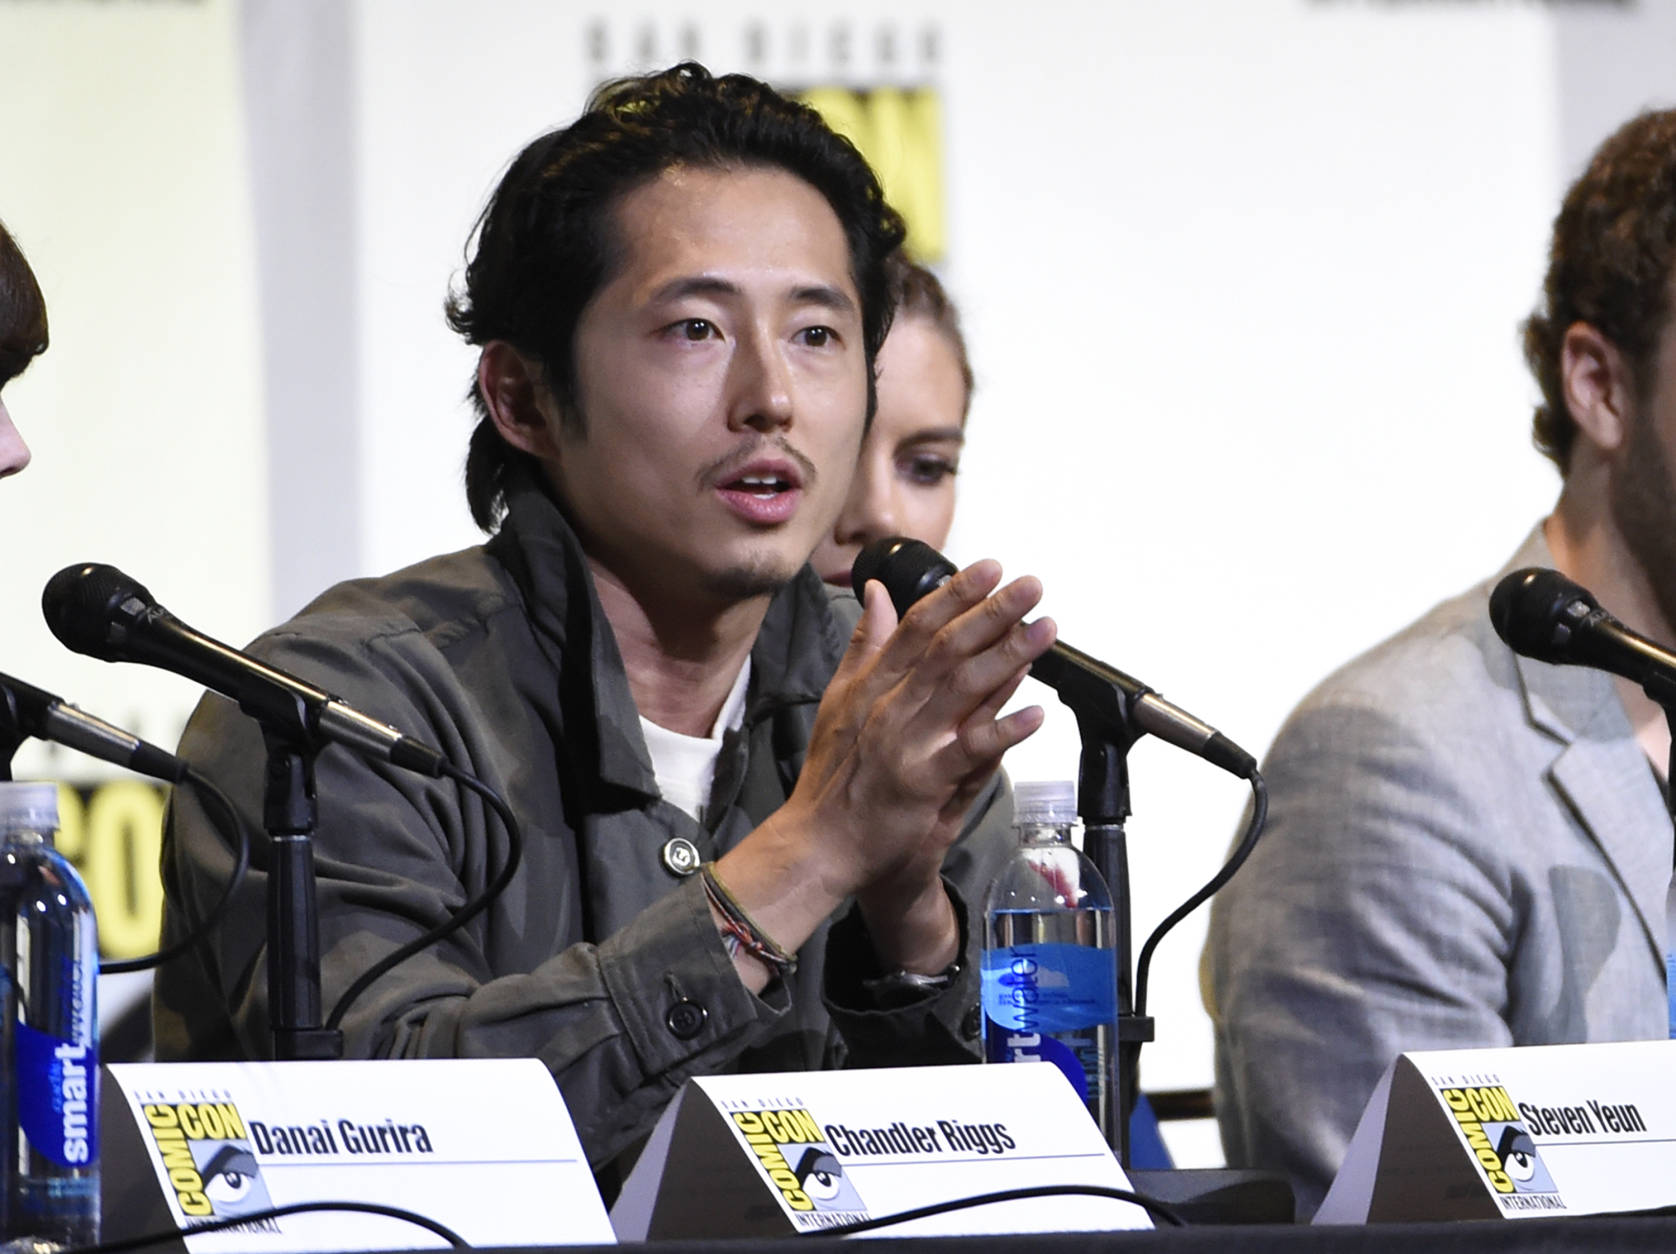 """Steven Yeun speaks during the """"The Walking Dead"""" panel on day 2 of Comic-Con International on Friday, July 22, 2016, in San Diego. (Photo by Chris Pizzello/Invision/AP)"""